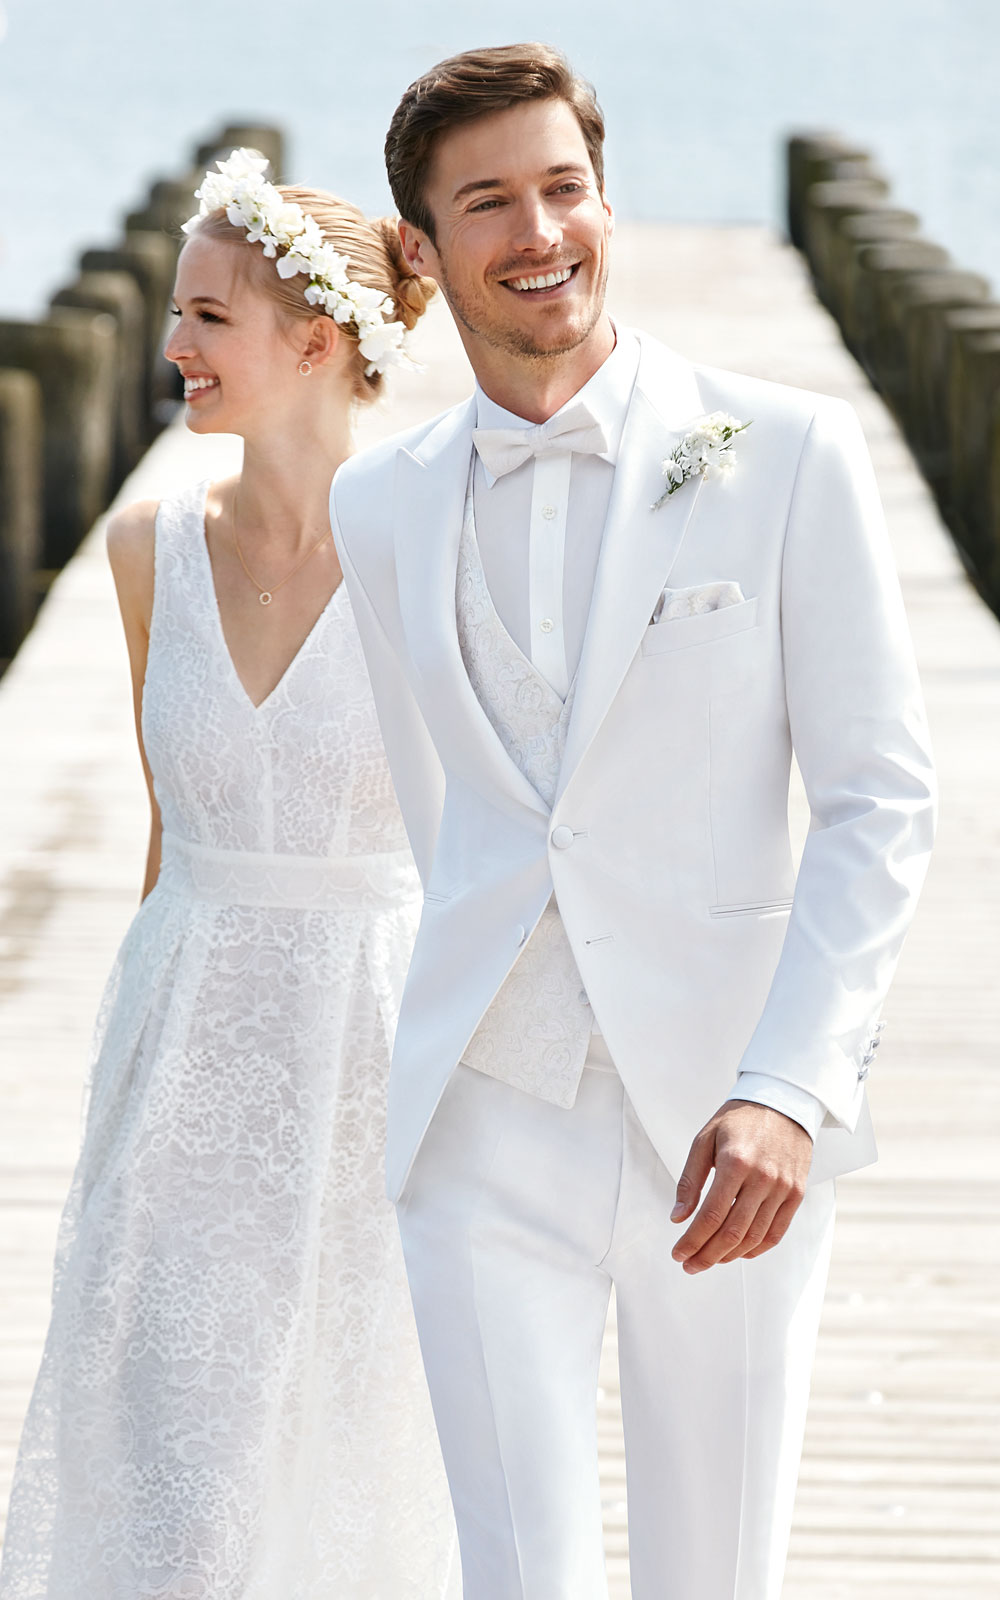 Elegant White Wedding Suit - Tom Murphy\'s Formal and Menswear